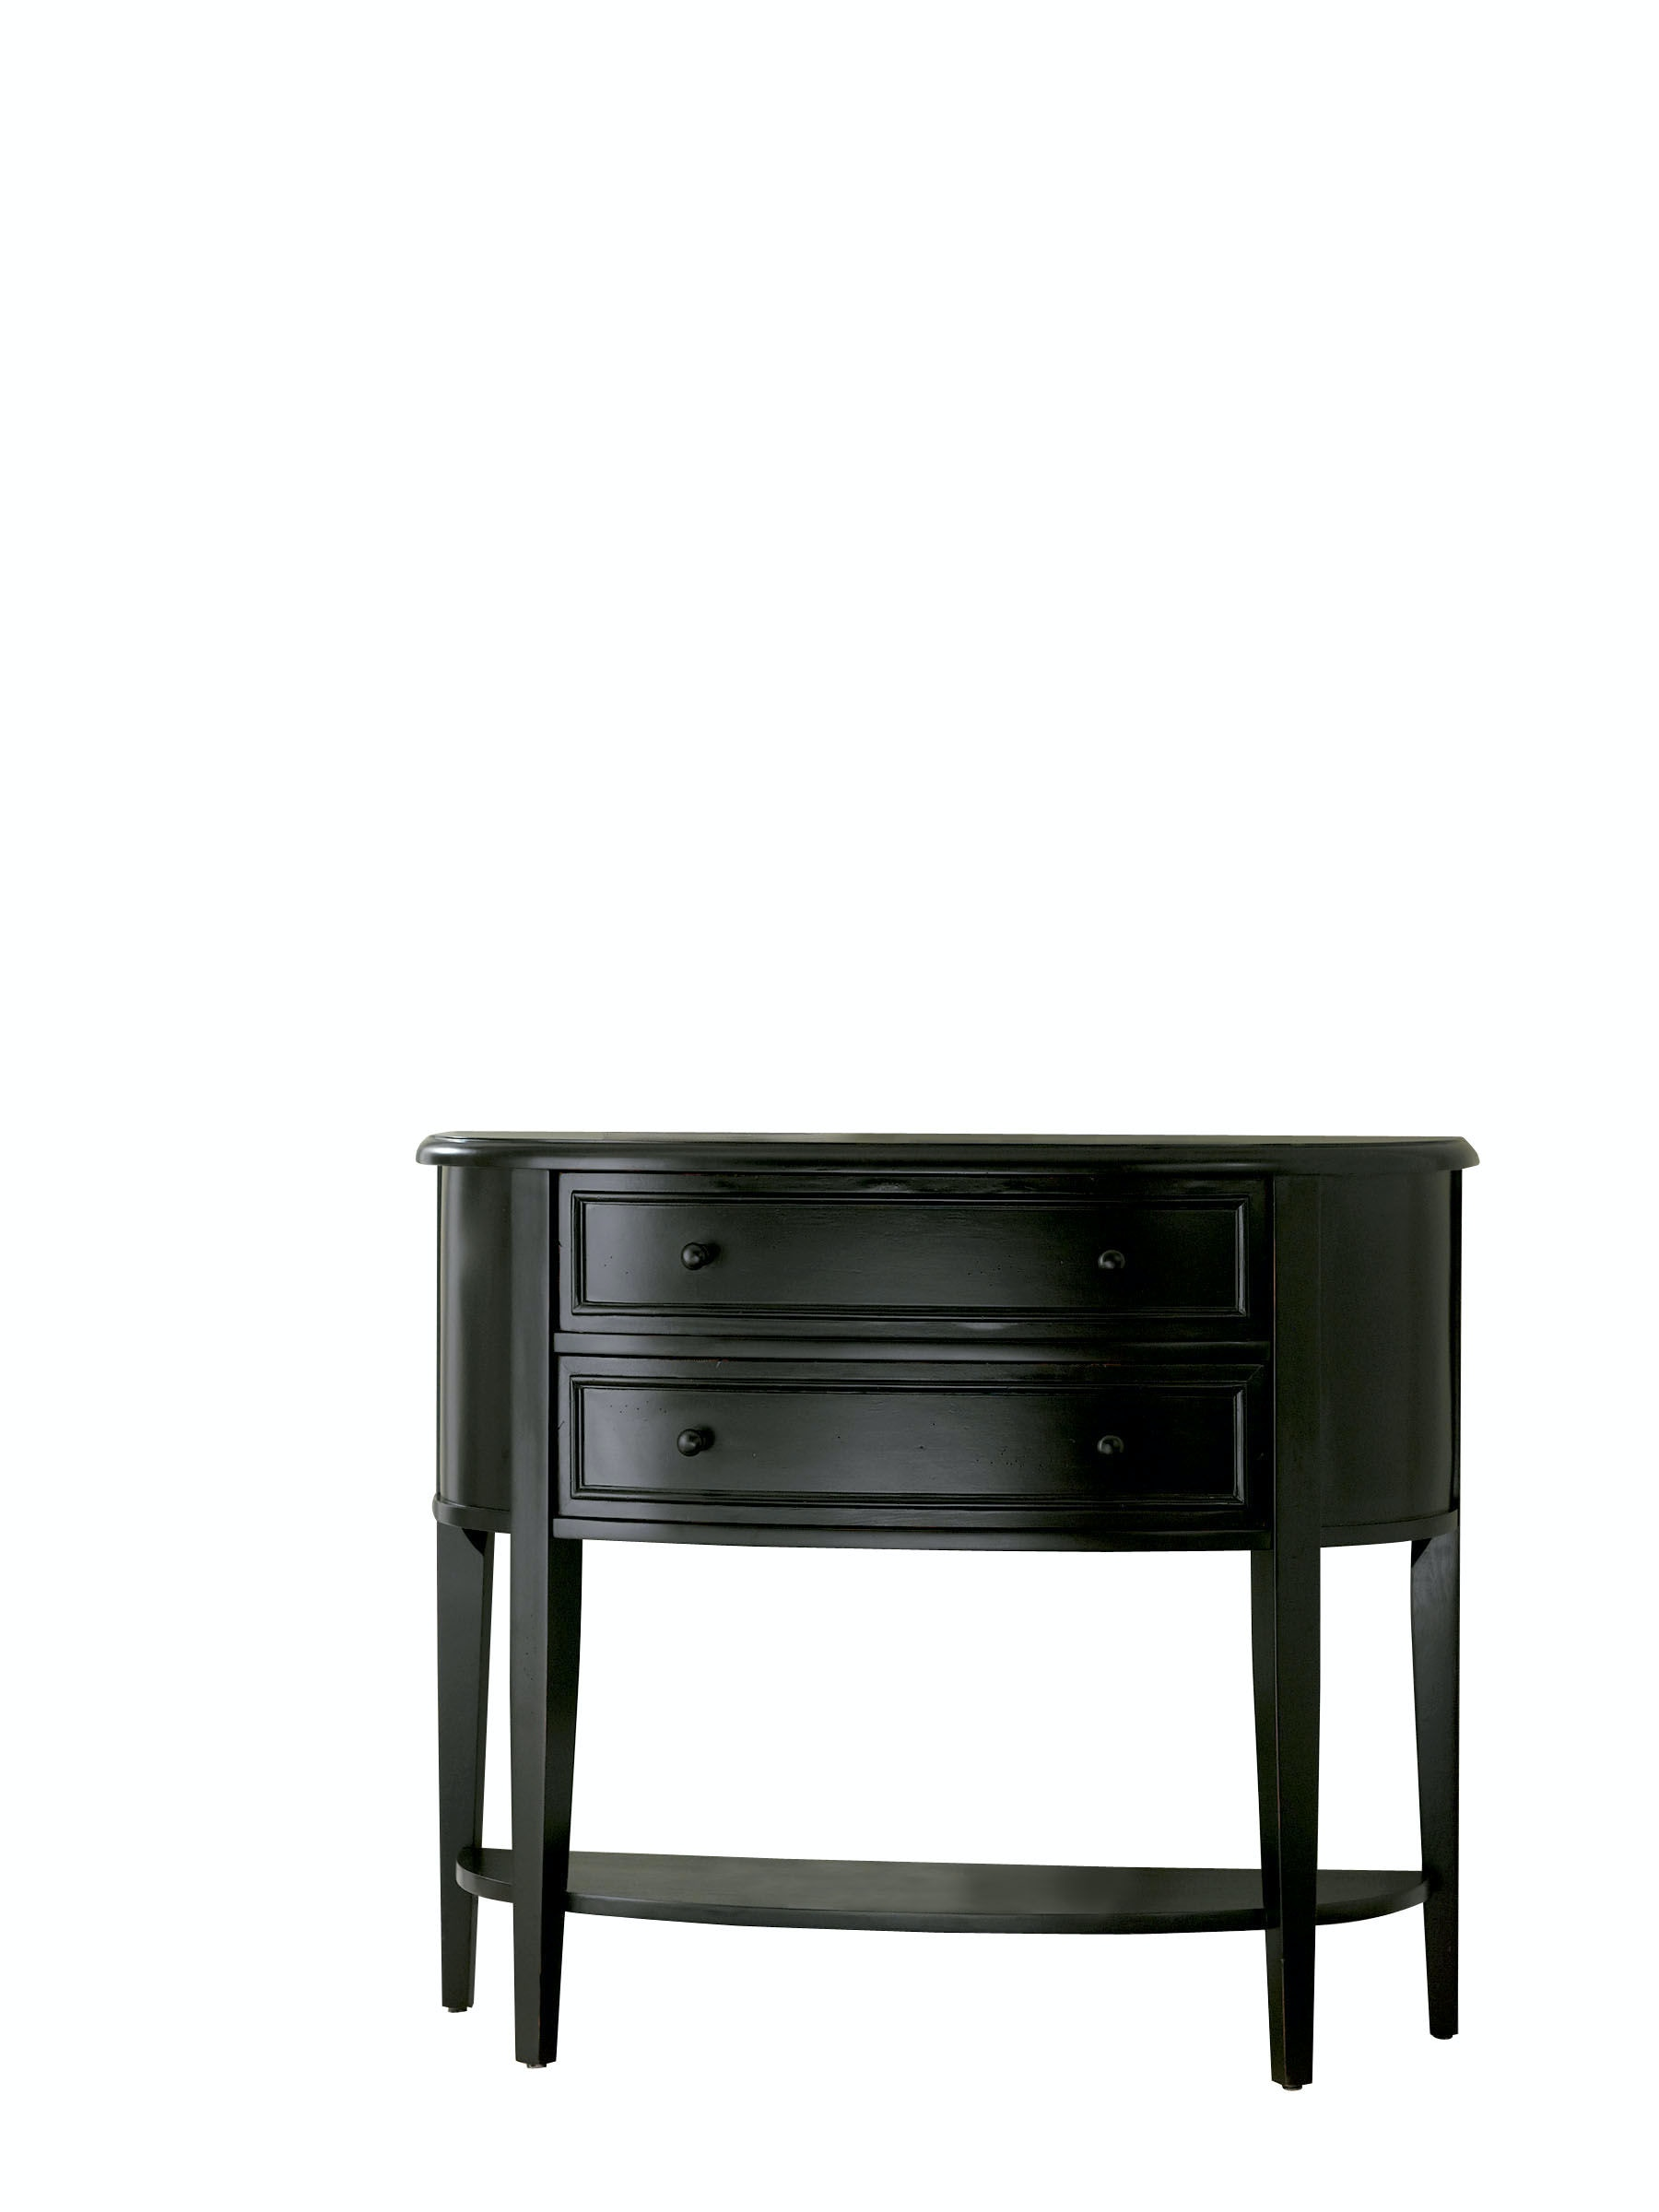 Powell Furniture Antique Black With Sand Through Terra Cotta Demilune  Console Table 502 515